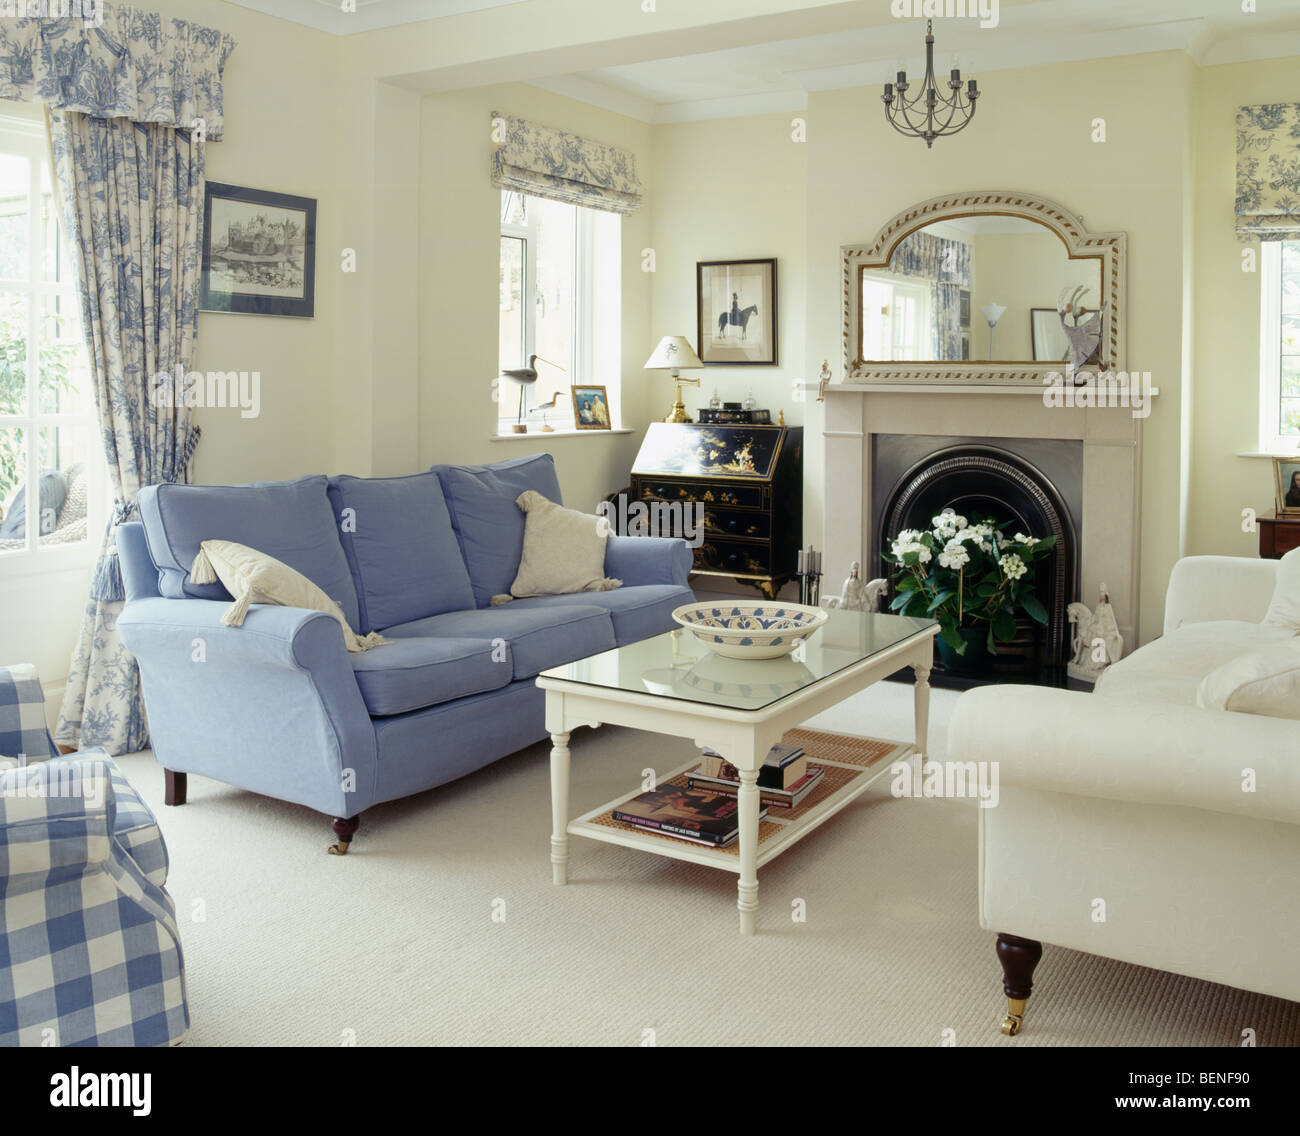 Blue and cream sofas on either side of fireplace in cream living